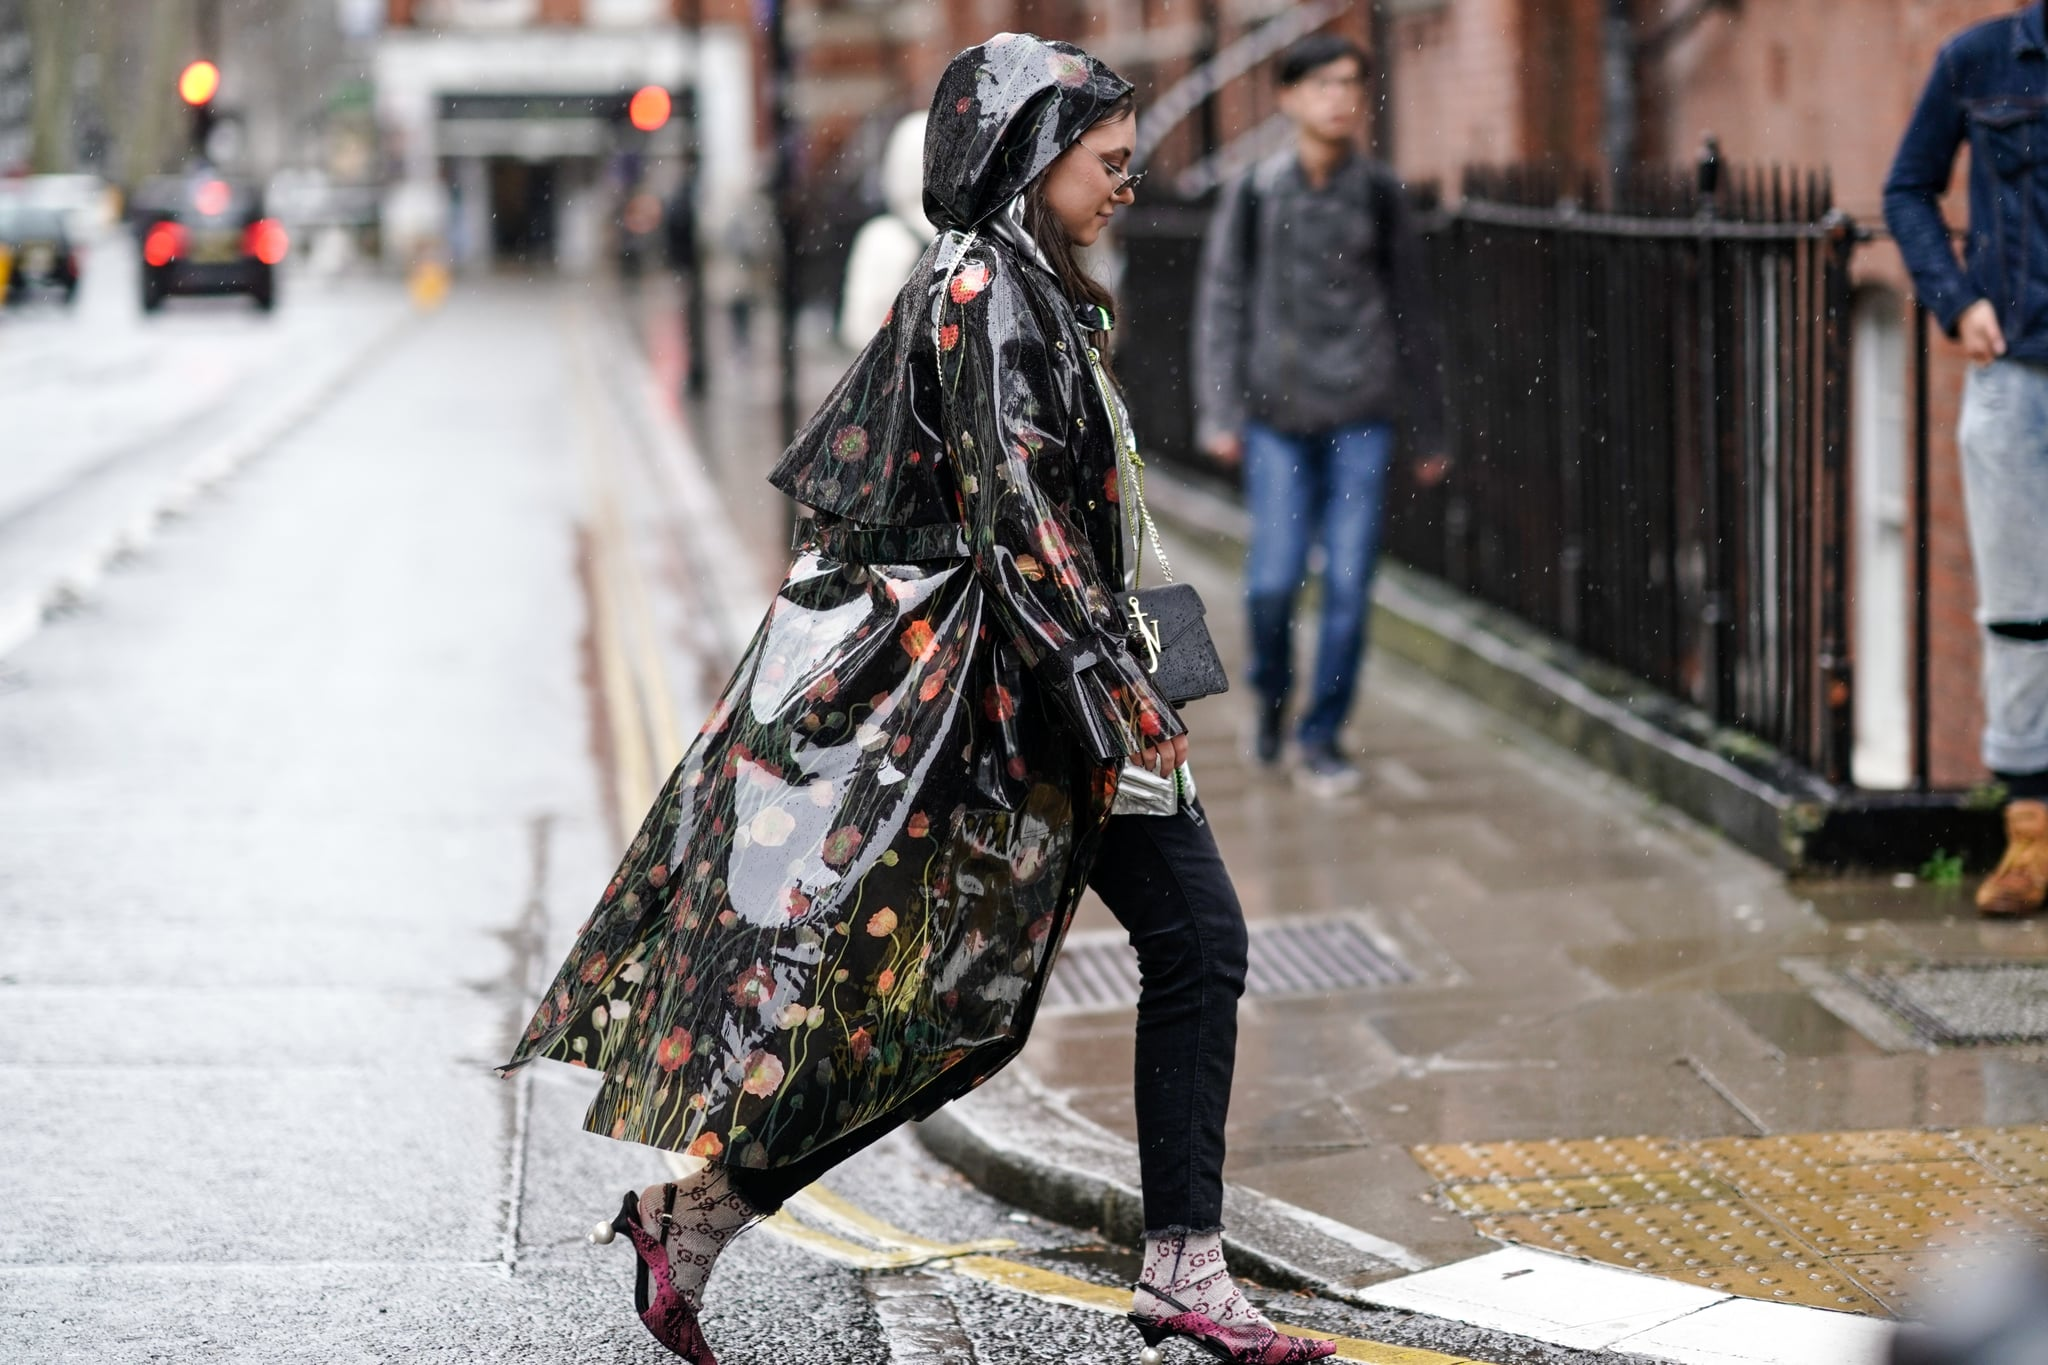 LONDON, ENGLAND - FEBRUARY 18: A guest wears sunglasses, a glossy floral printed vinyl raincoat, a black JW Anderson bag, black ripped hem jeans, Gucci socks, pink python pattern pumps with pearl heels, during London Fashion Week February 2019 on February 18, 2019 in London, England. (Photo by Edward Berthelot/Getty Images)